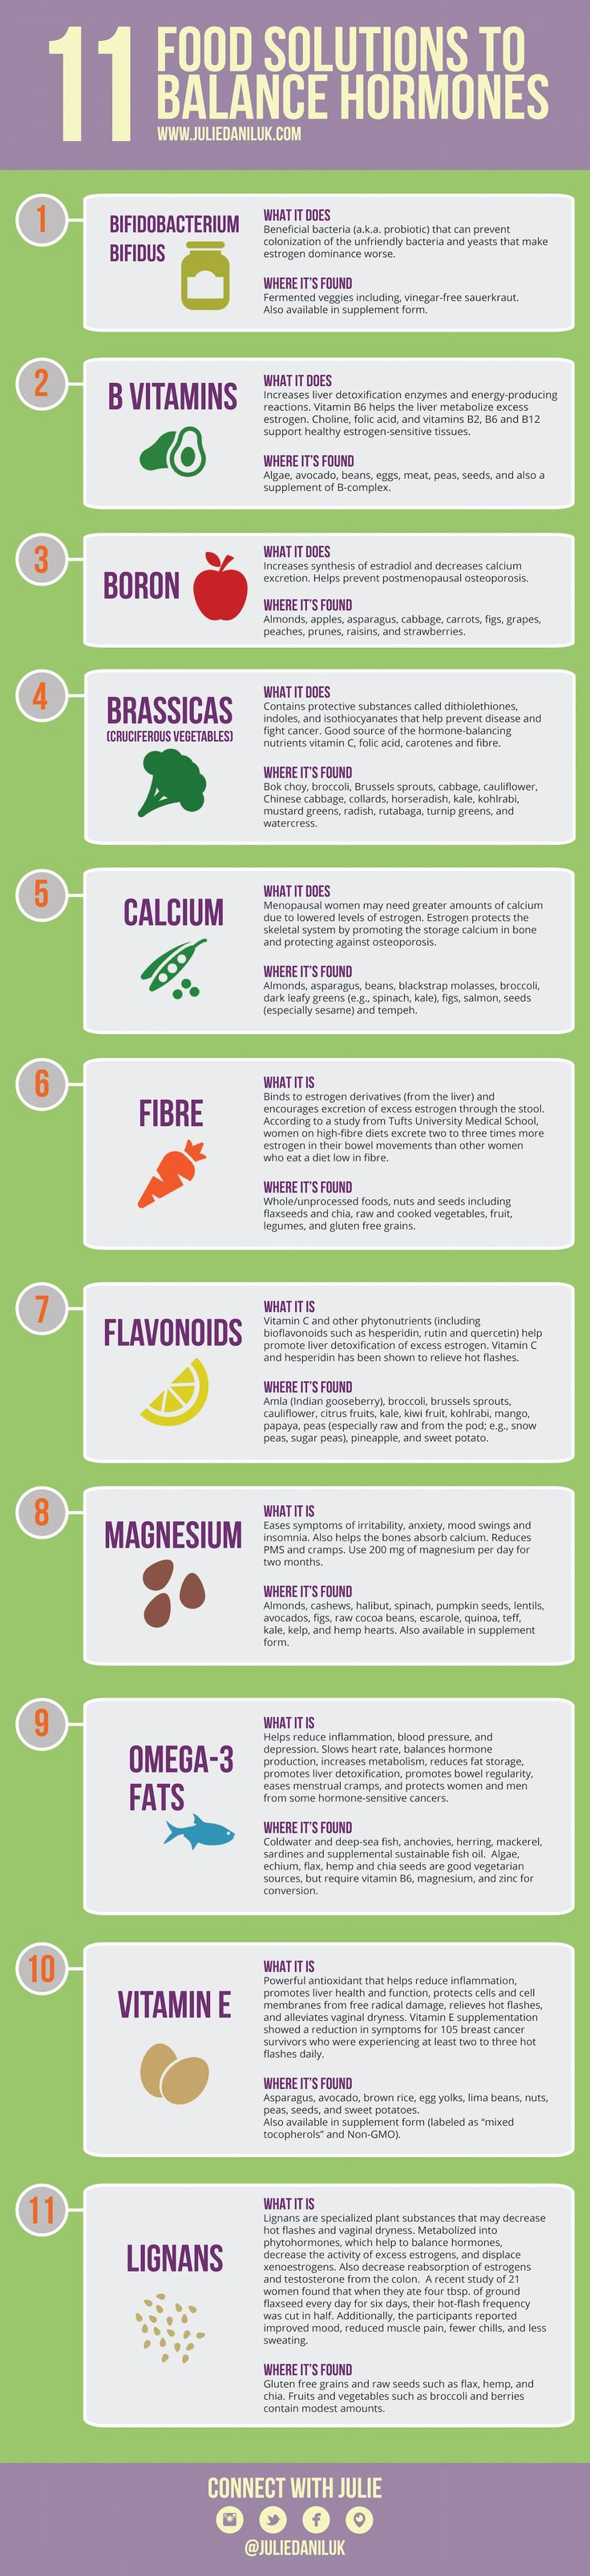 Foods that balance Hormones [Infographic] | ecogreenlove